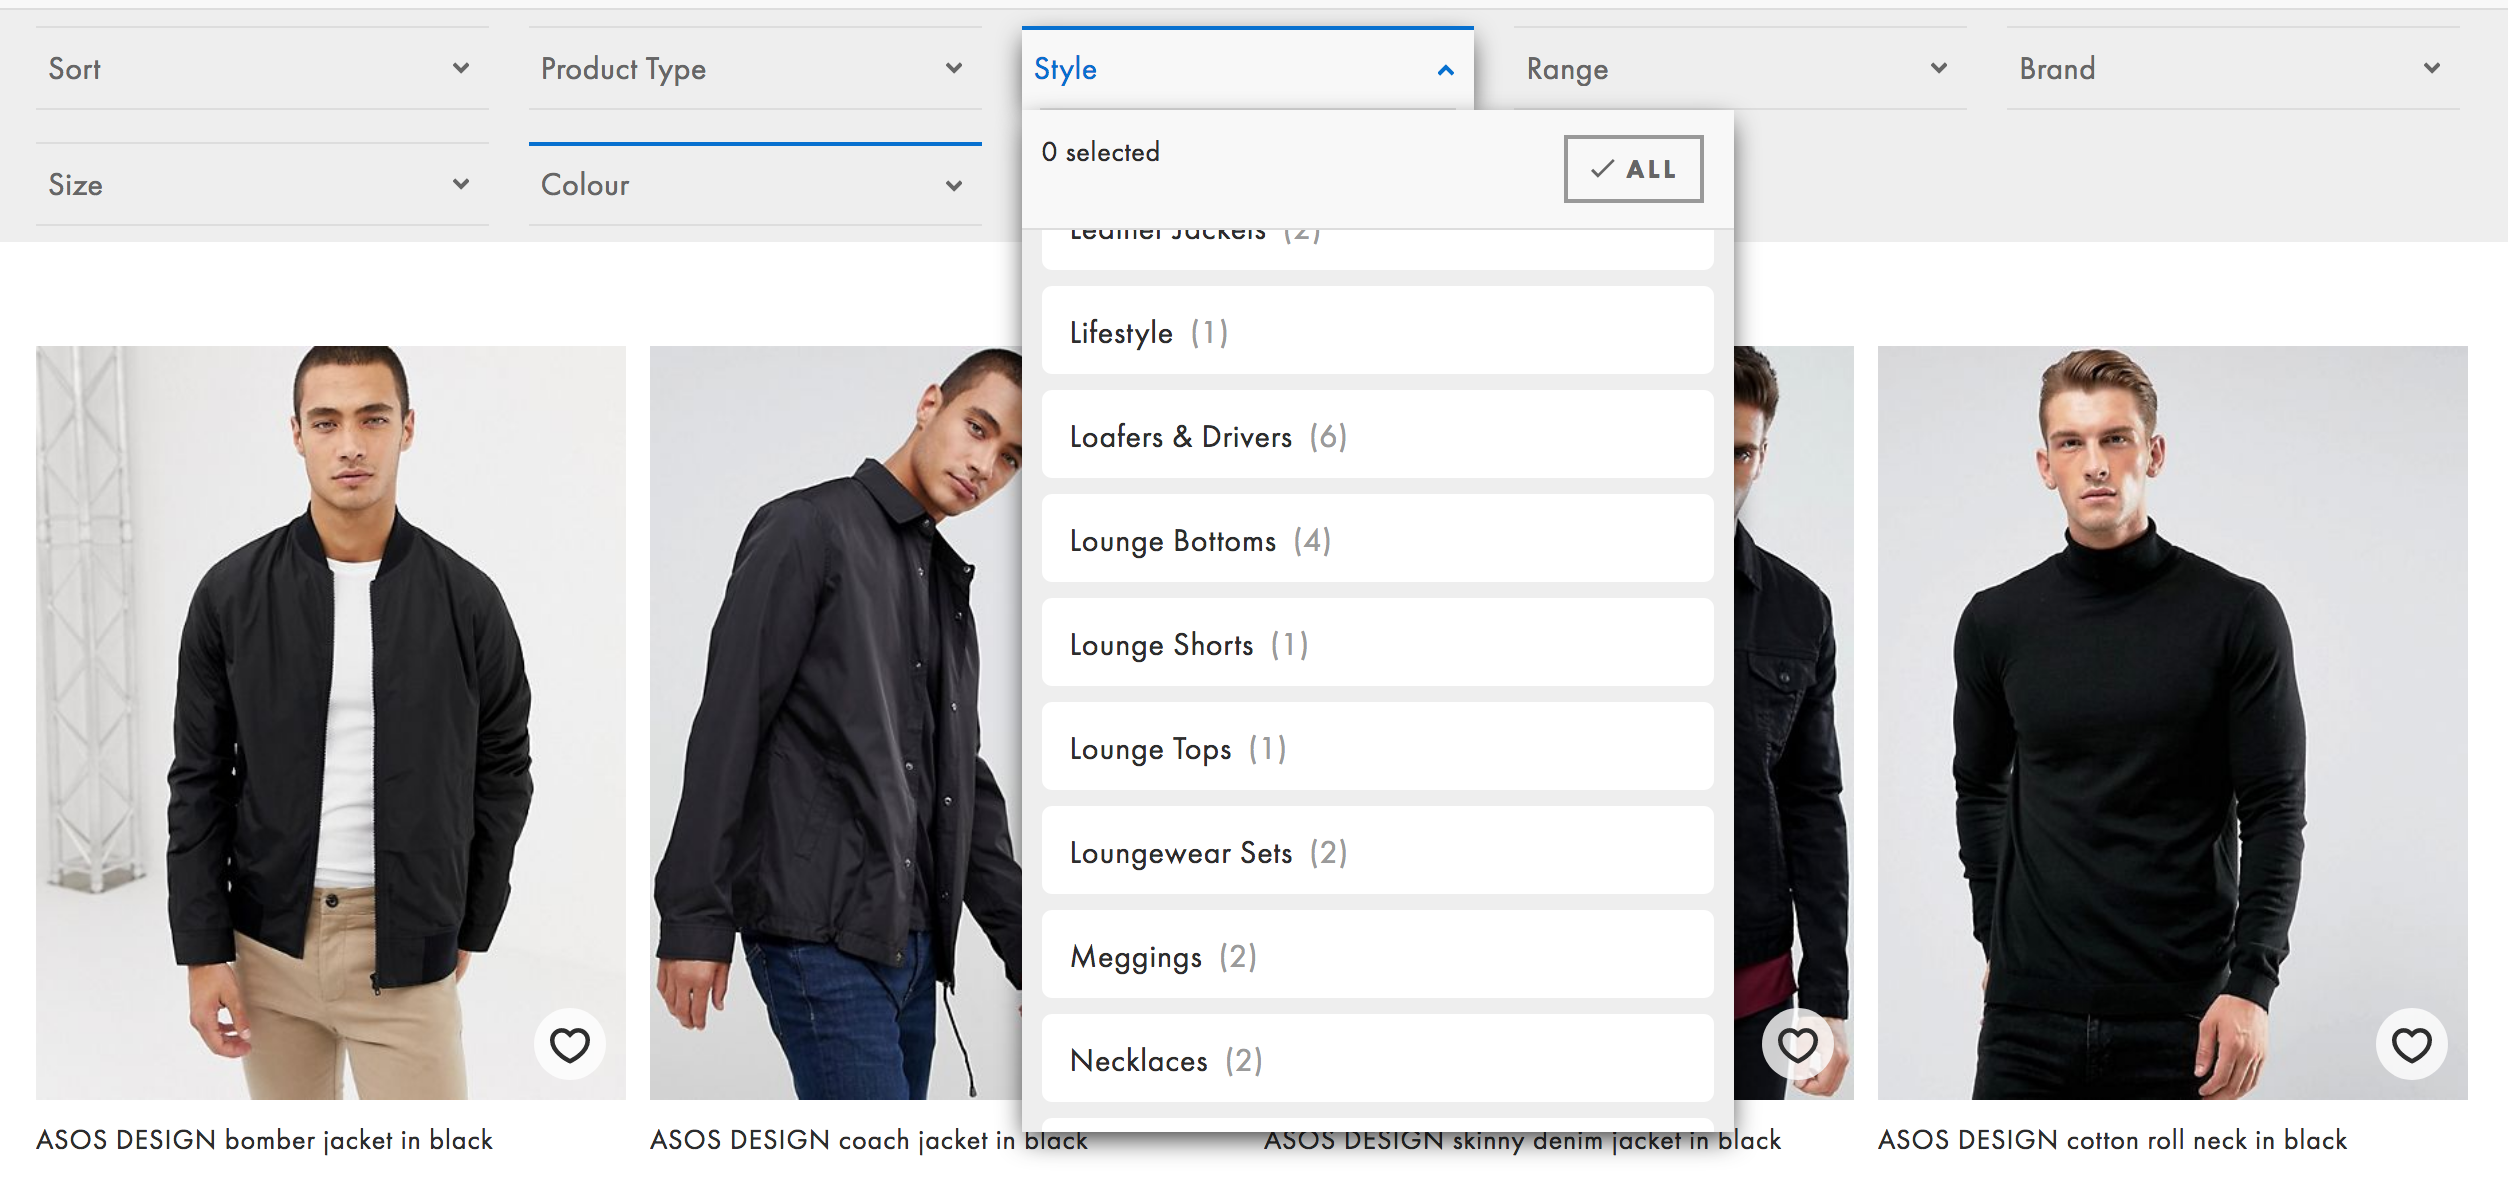 ASOS listings page top filters